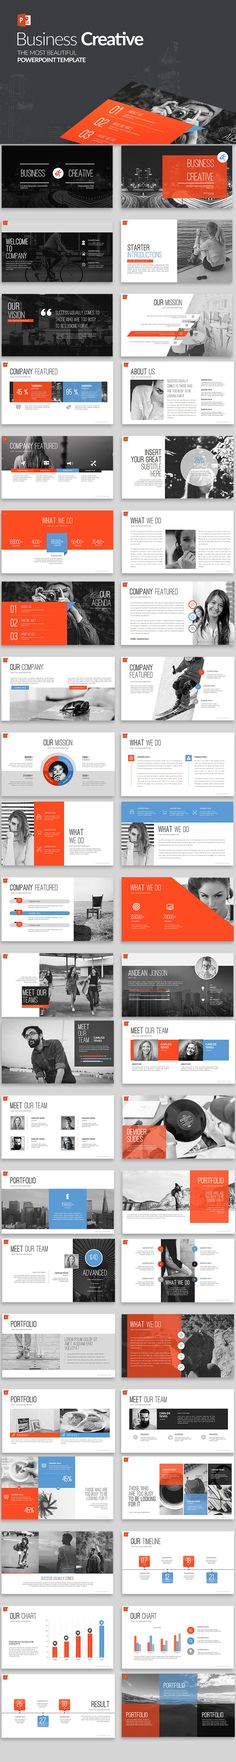 38 Best Modern Powerpoint Templates Images On Pinterest In 2018